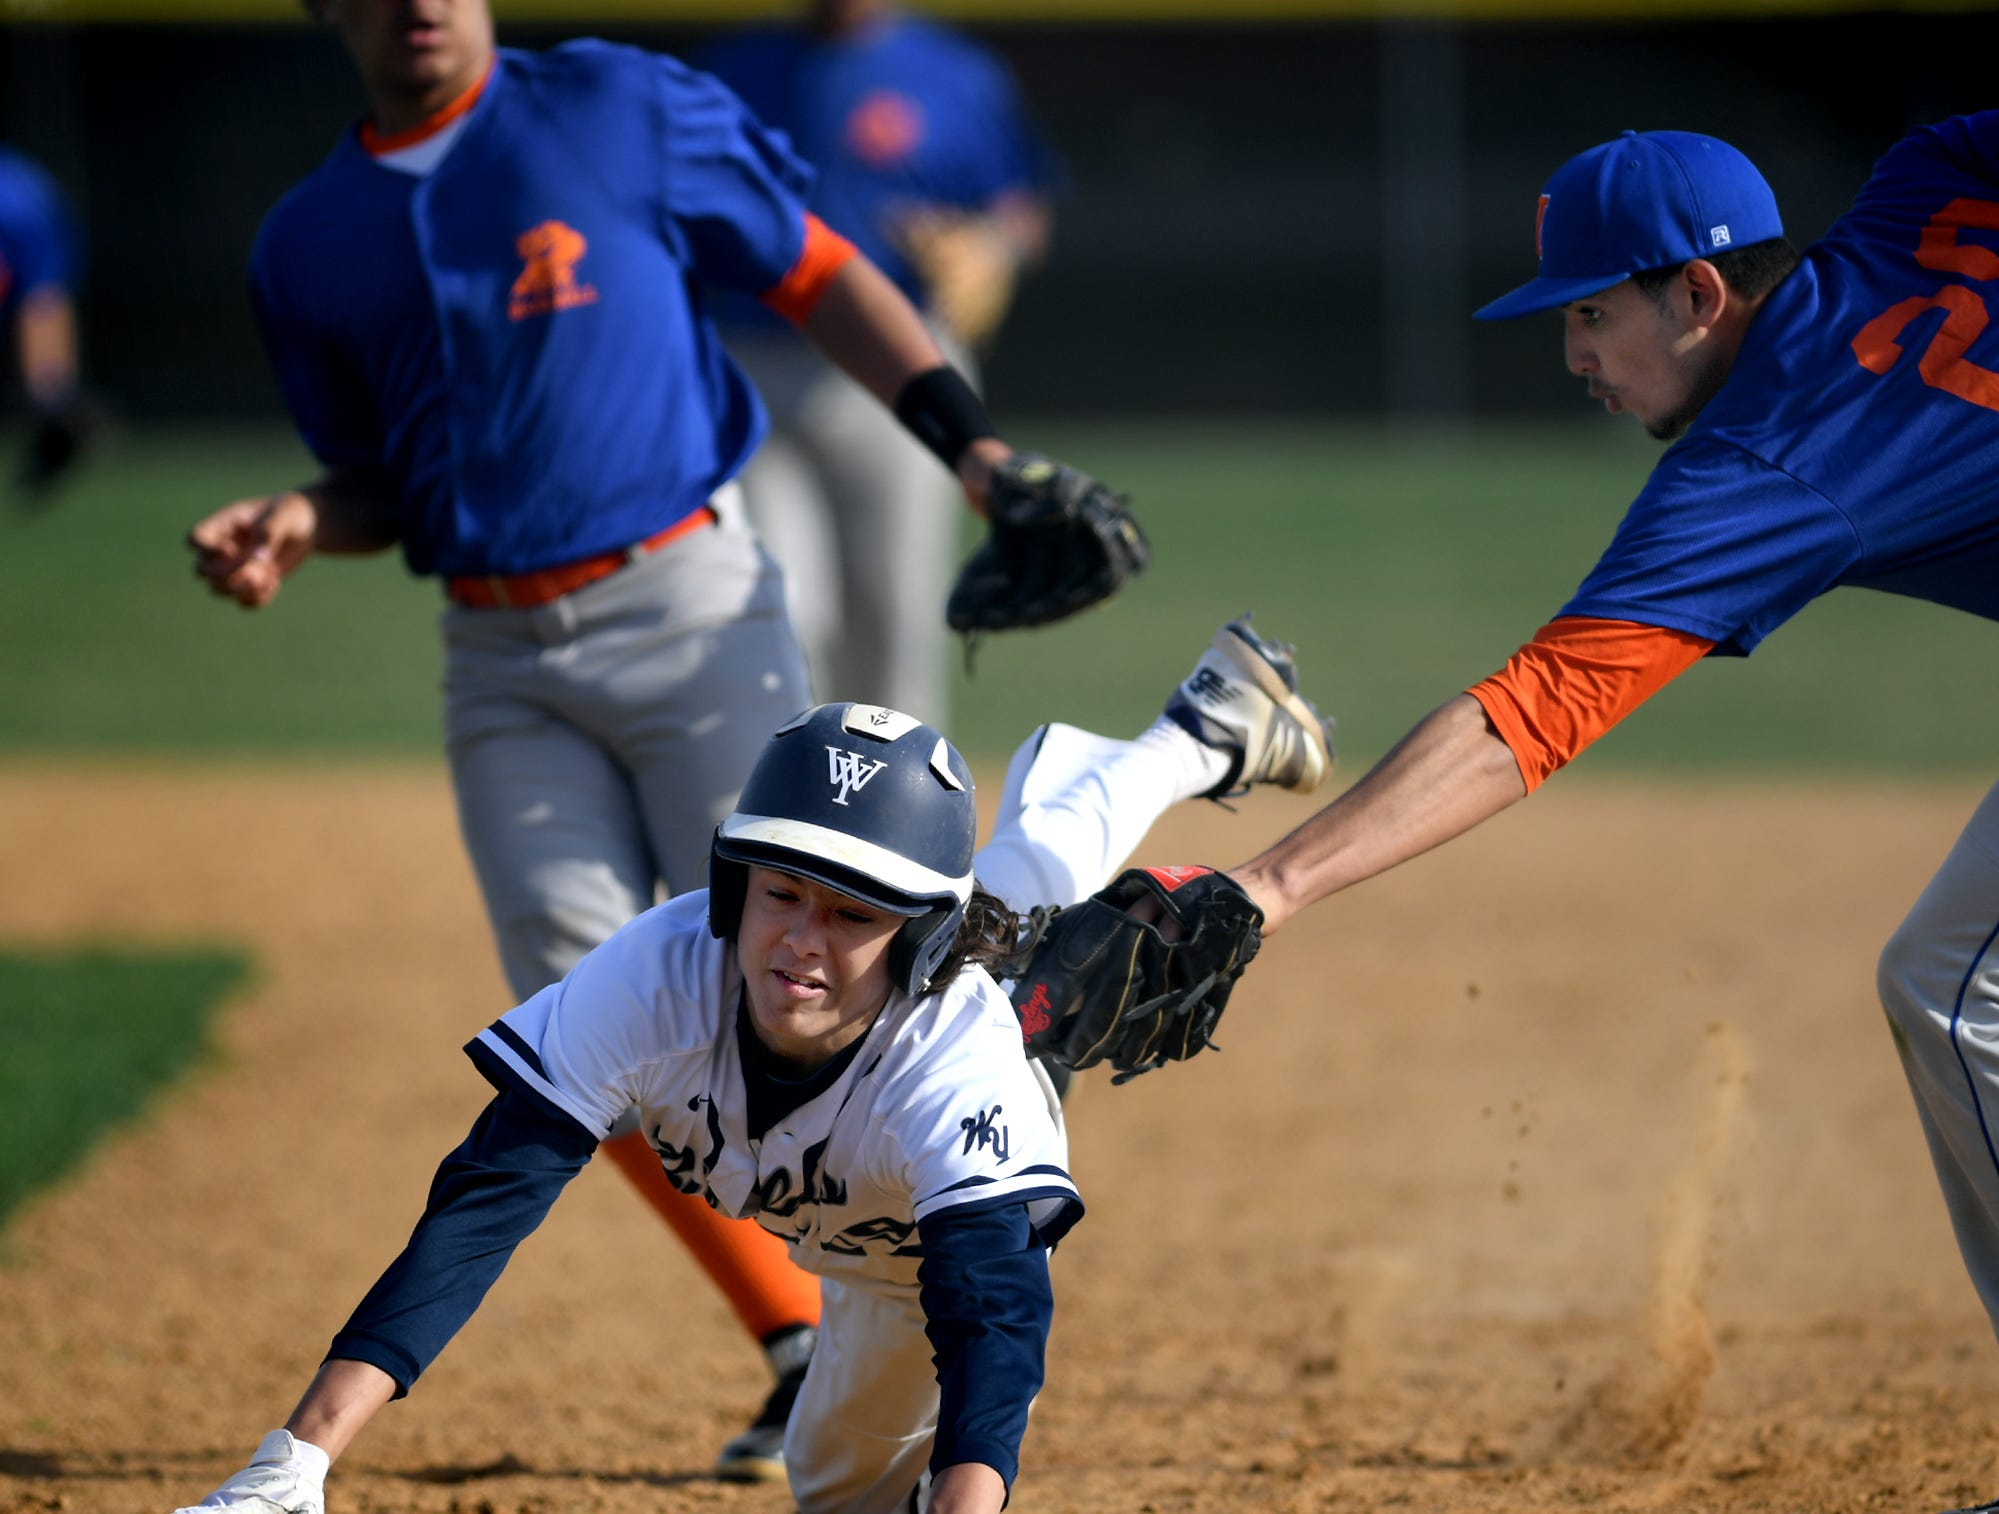 York pitcher Jose Alesandro Rodriguez puts a tag on West York's Jeff Minot who was caught in a run-down at first base with York second baseman Erick Polanco, background, during baseball action at Shiloh Wednesday, April 10, 2019. Bill Kalina photo